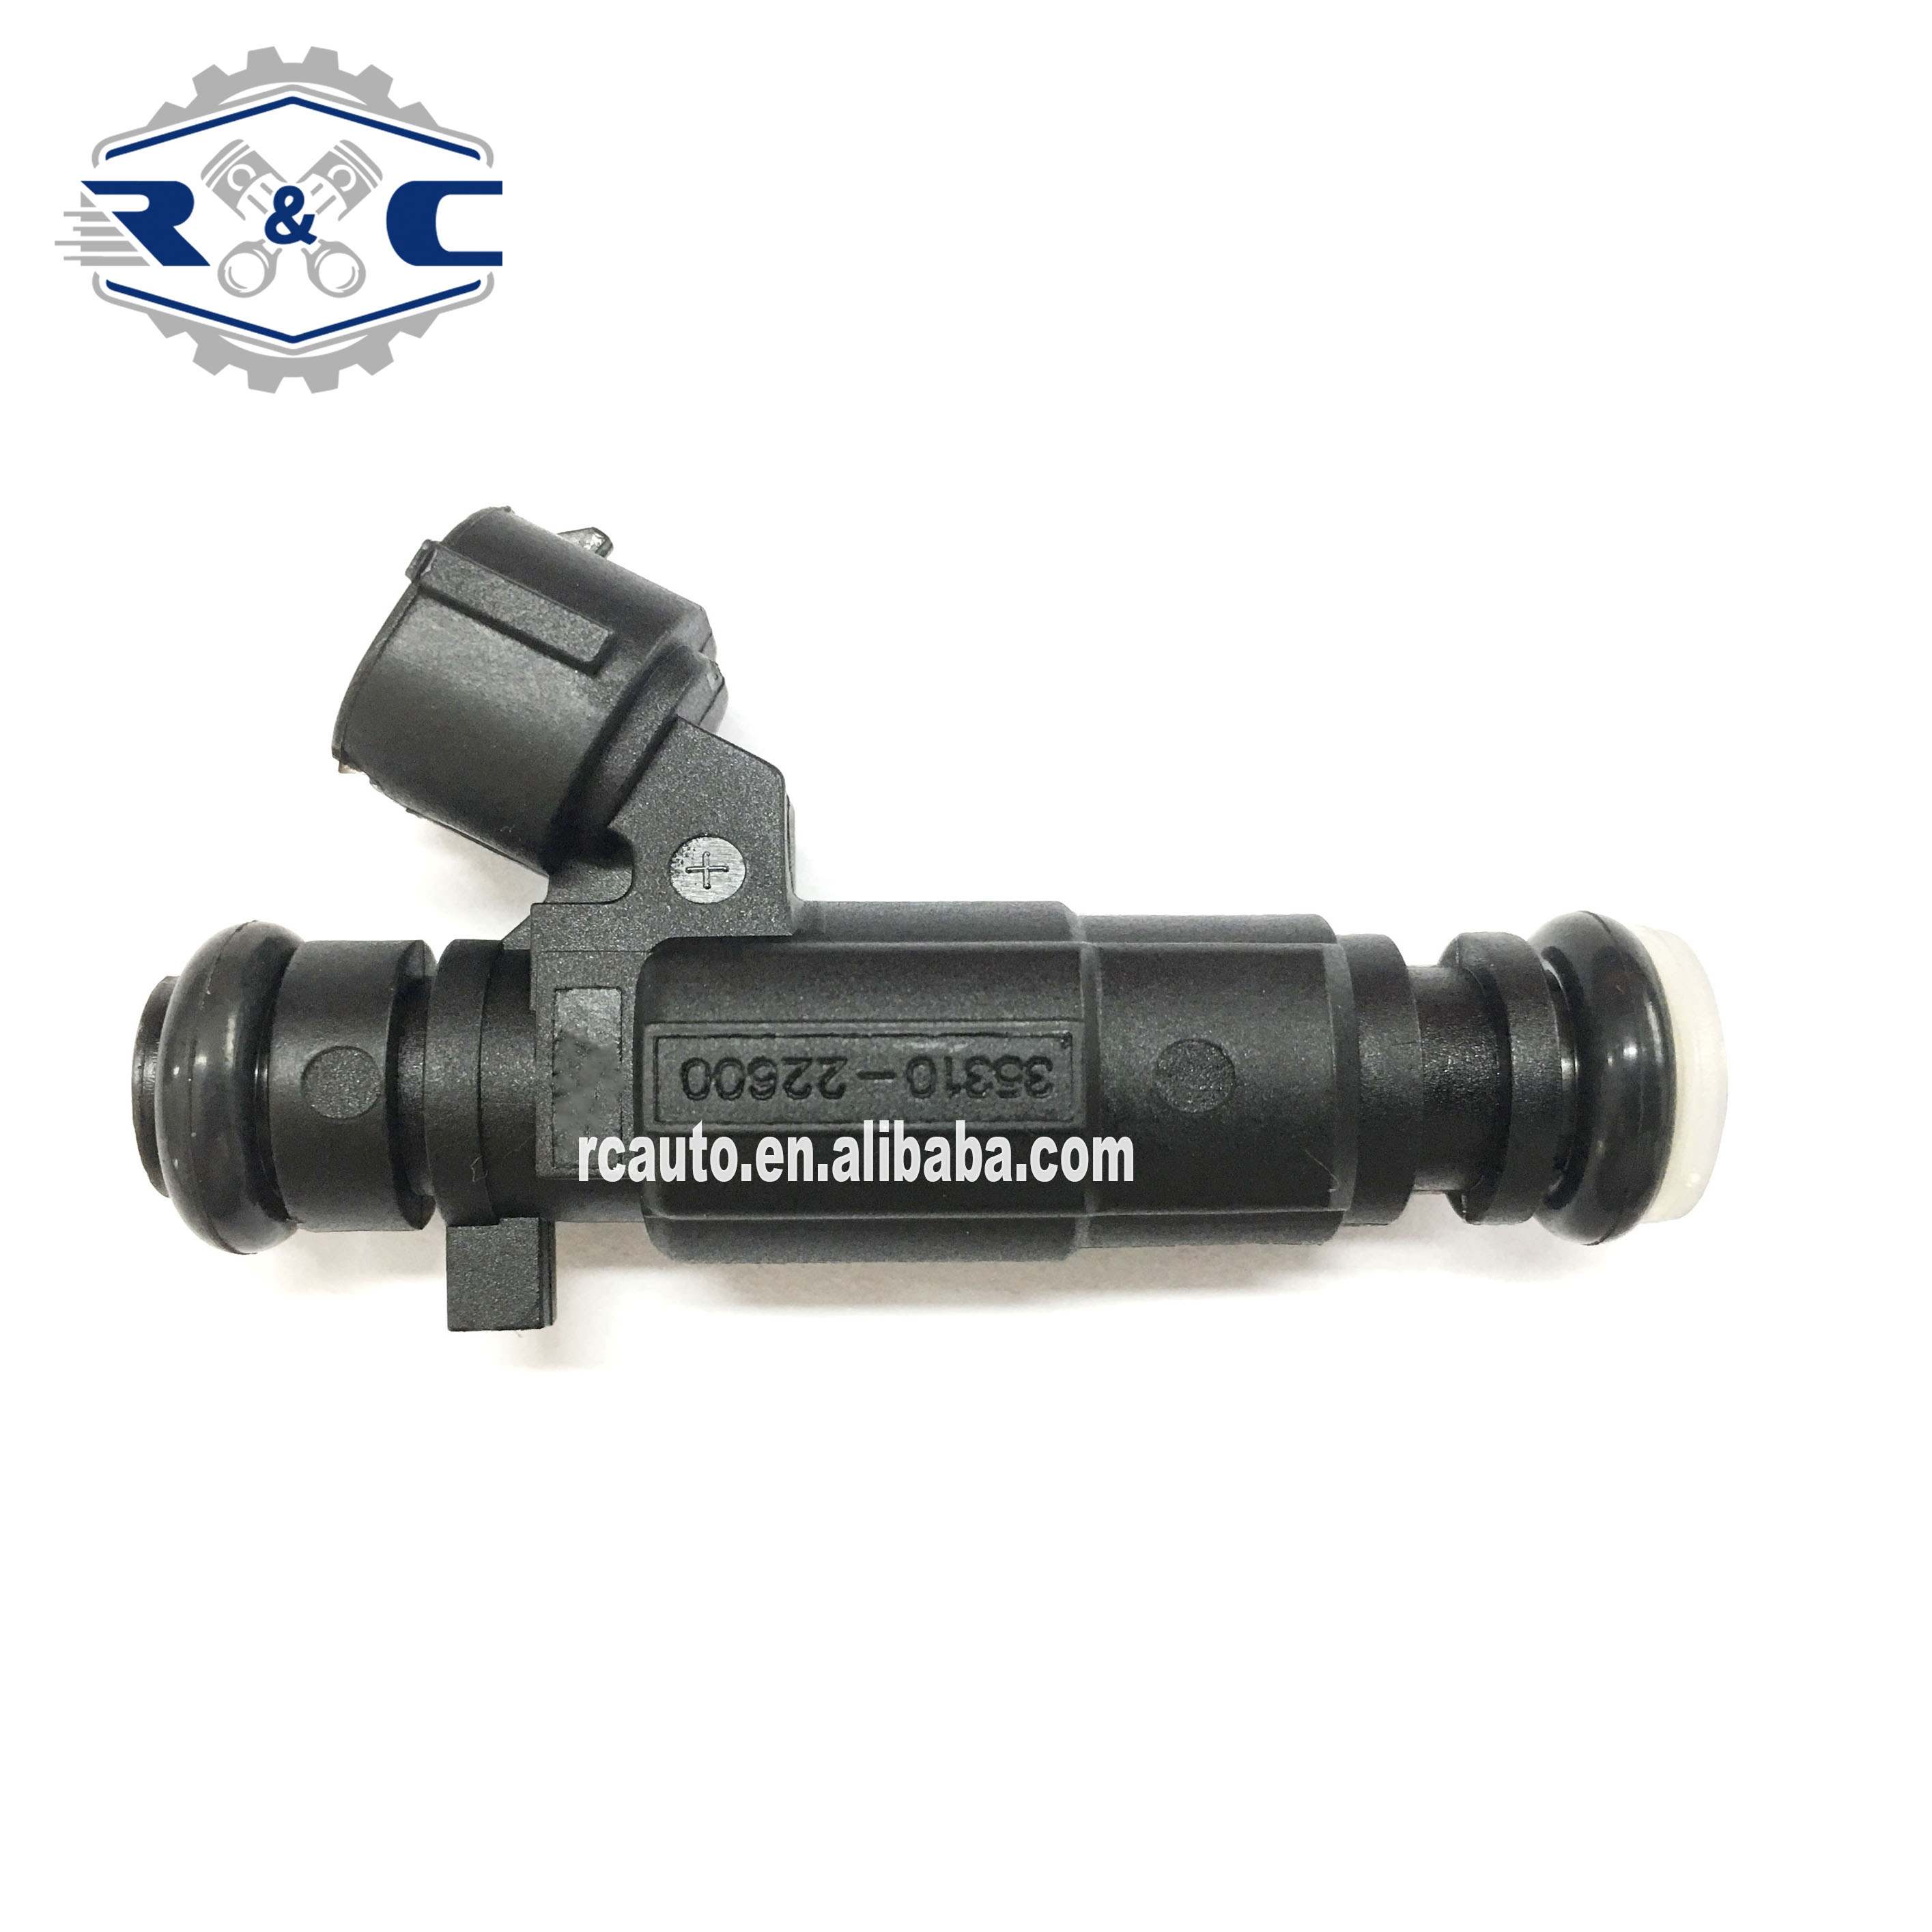 R&C High Quality injector 3531022600 Nozzle Auto Valve For Hyundai 100% Professional Tested Gasoline Fuel inyector